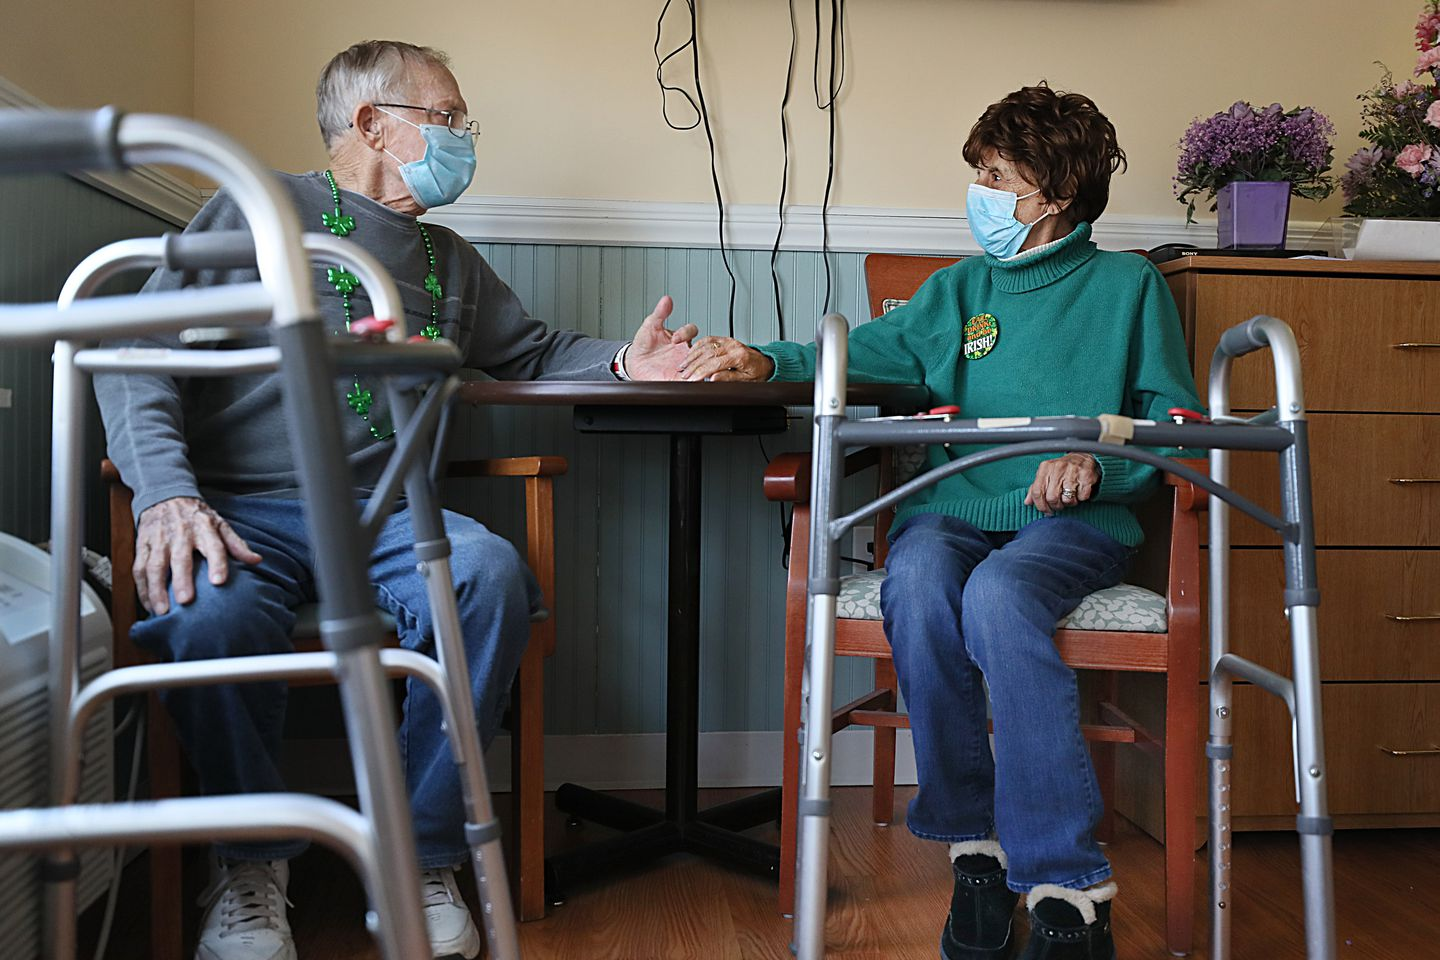 Until recently, nursing home residents Joseph and Mary Kaczynski, who have been married for 60 years, had to live in separate rooms at Alliance Health at Abbott.